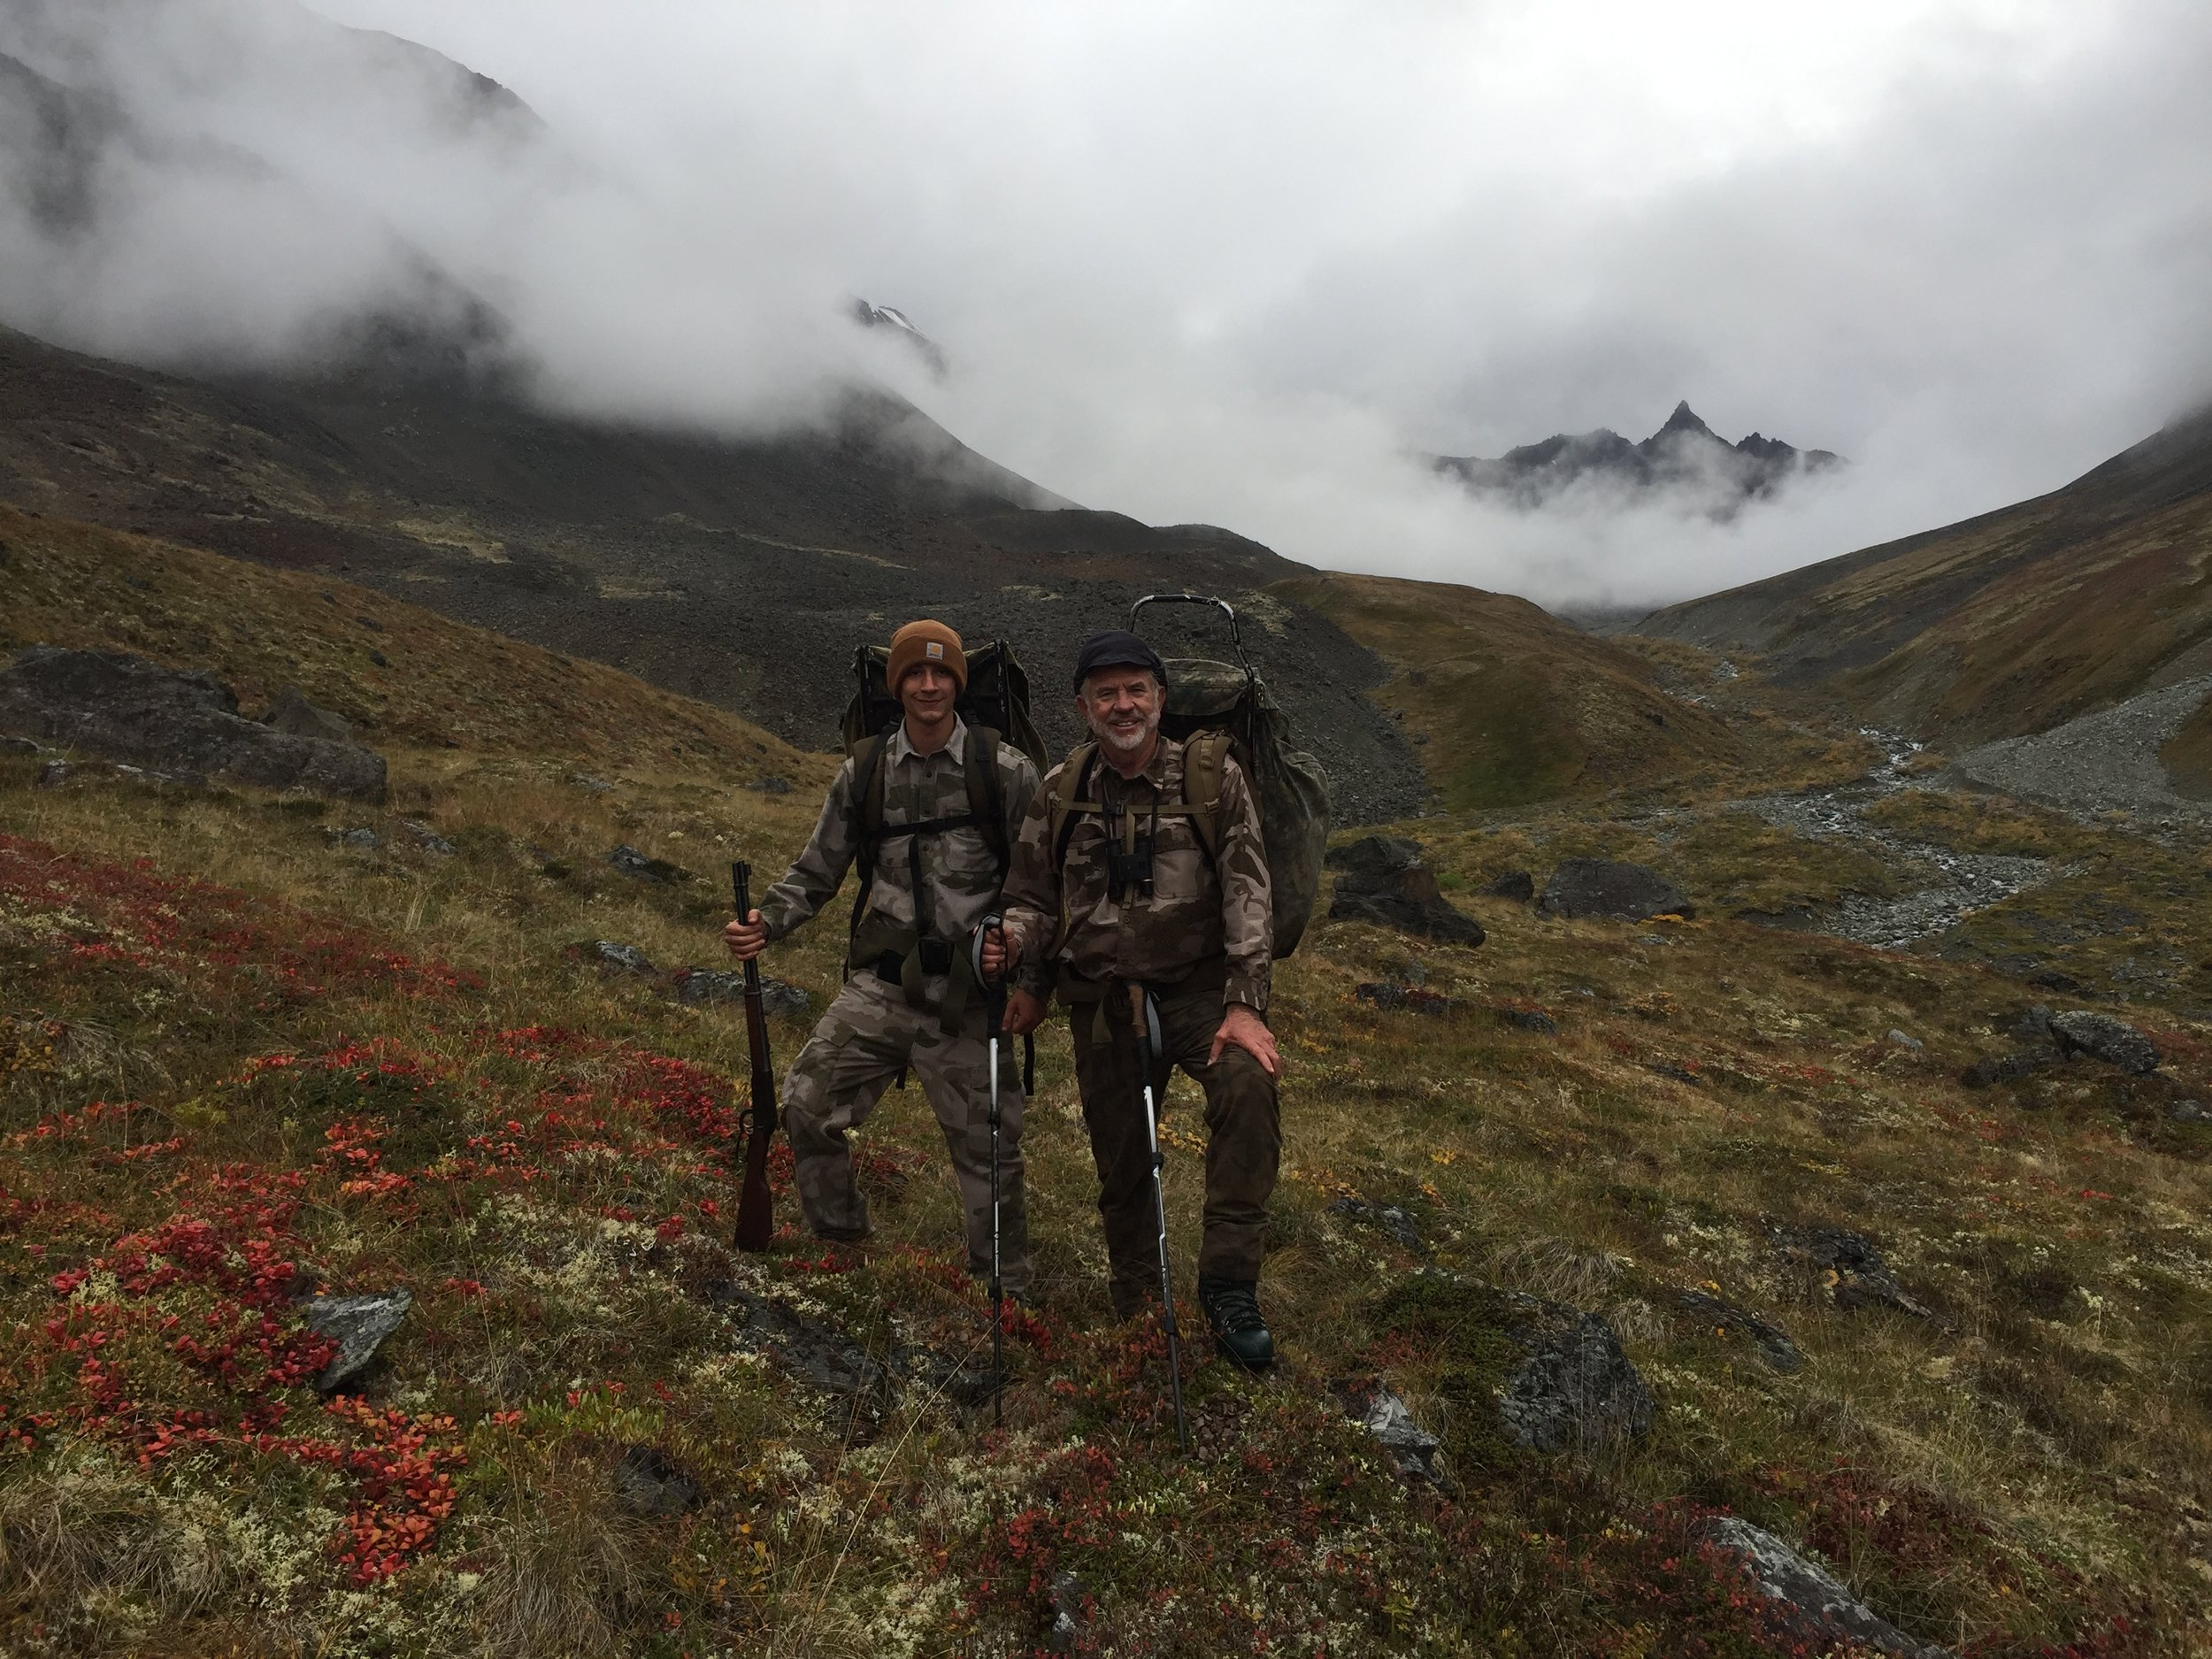 Jared and me hunting out of the valley.